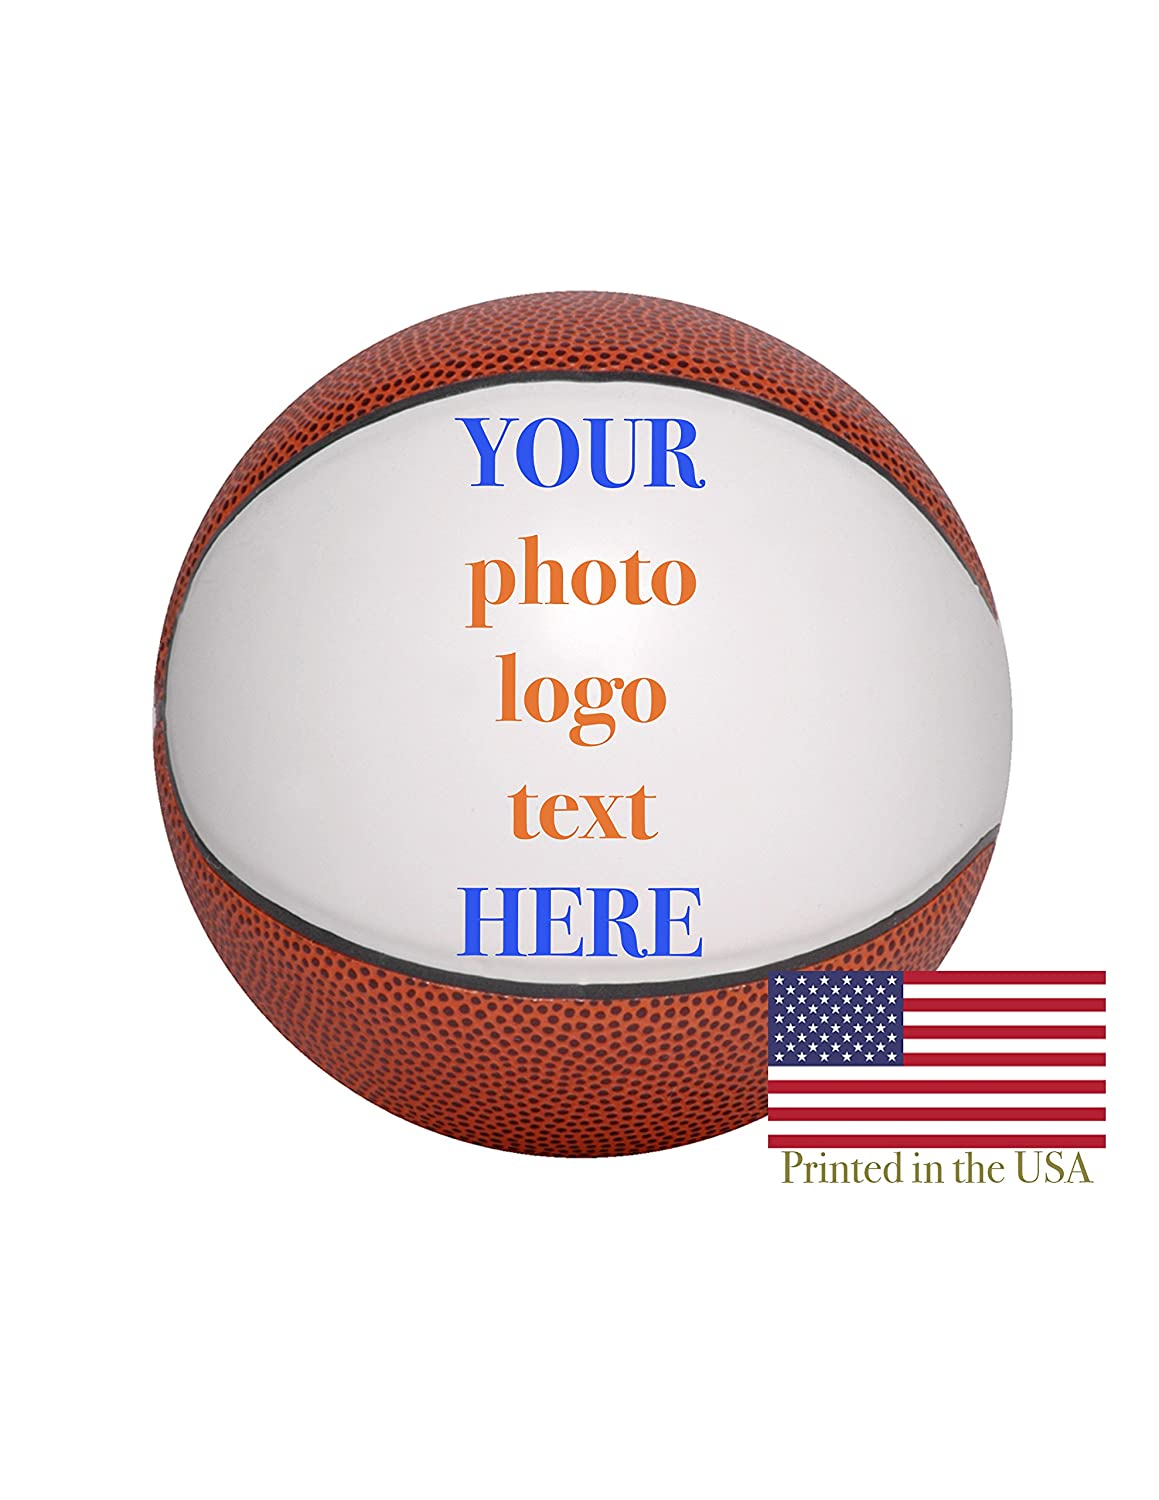 Custom Personalized Basketball - 9 Inch Basketball - Ships Next Day, High Resolution Photos, Logos & Text on Basketball Balls - for Trophies, Personalized Gifts Ballstars